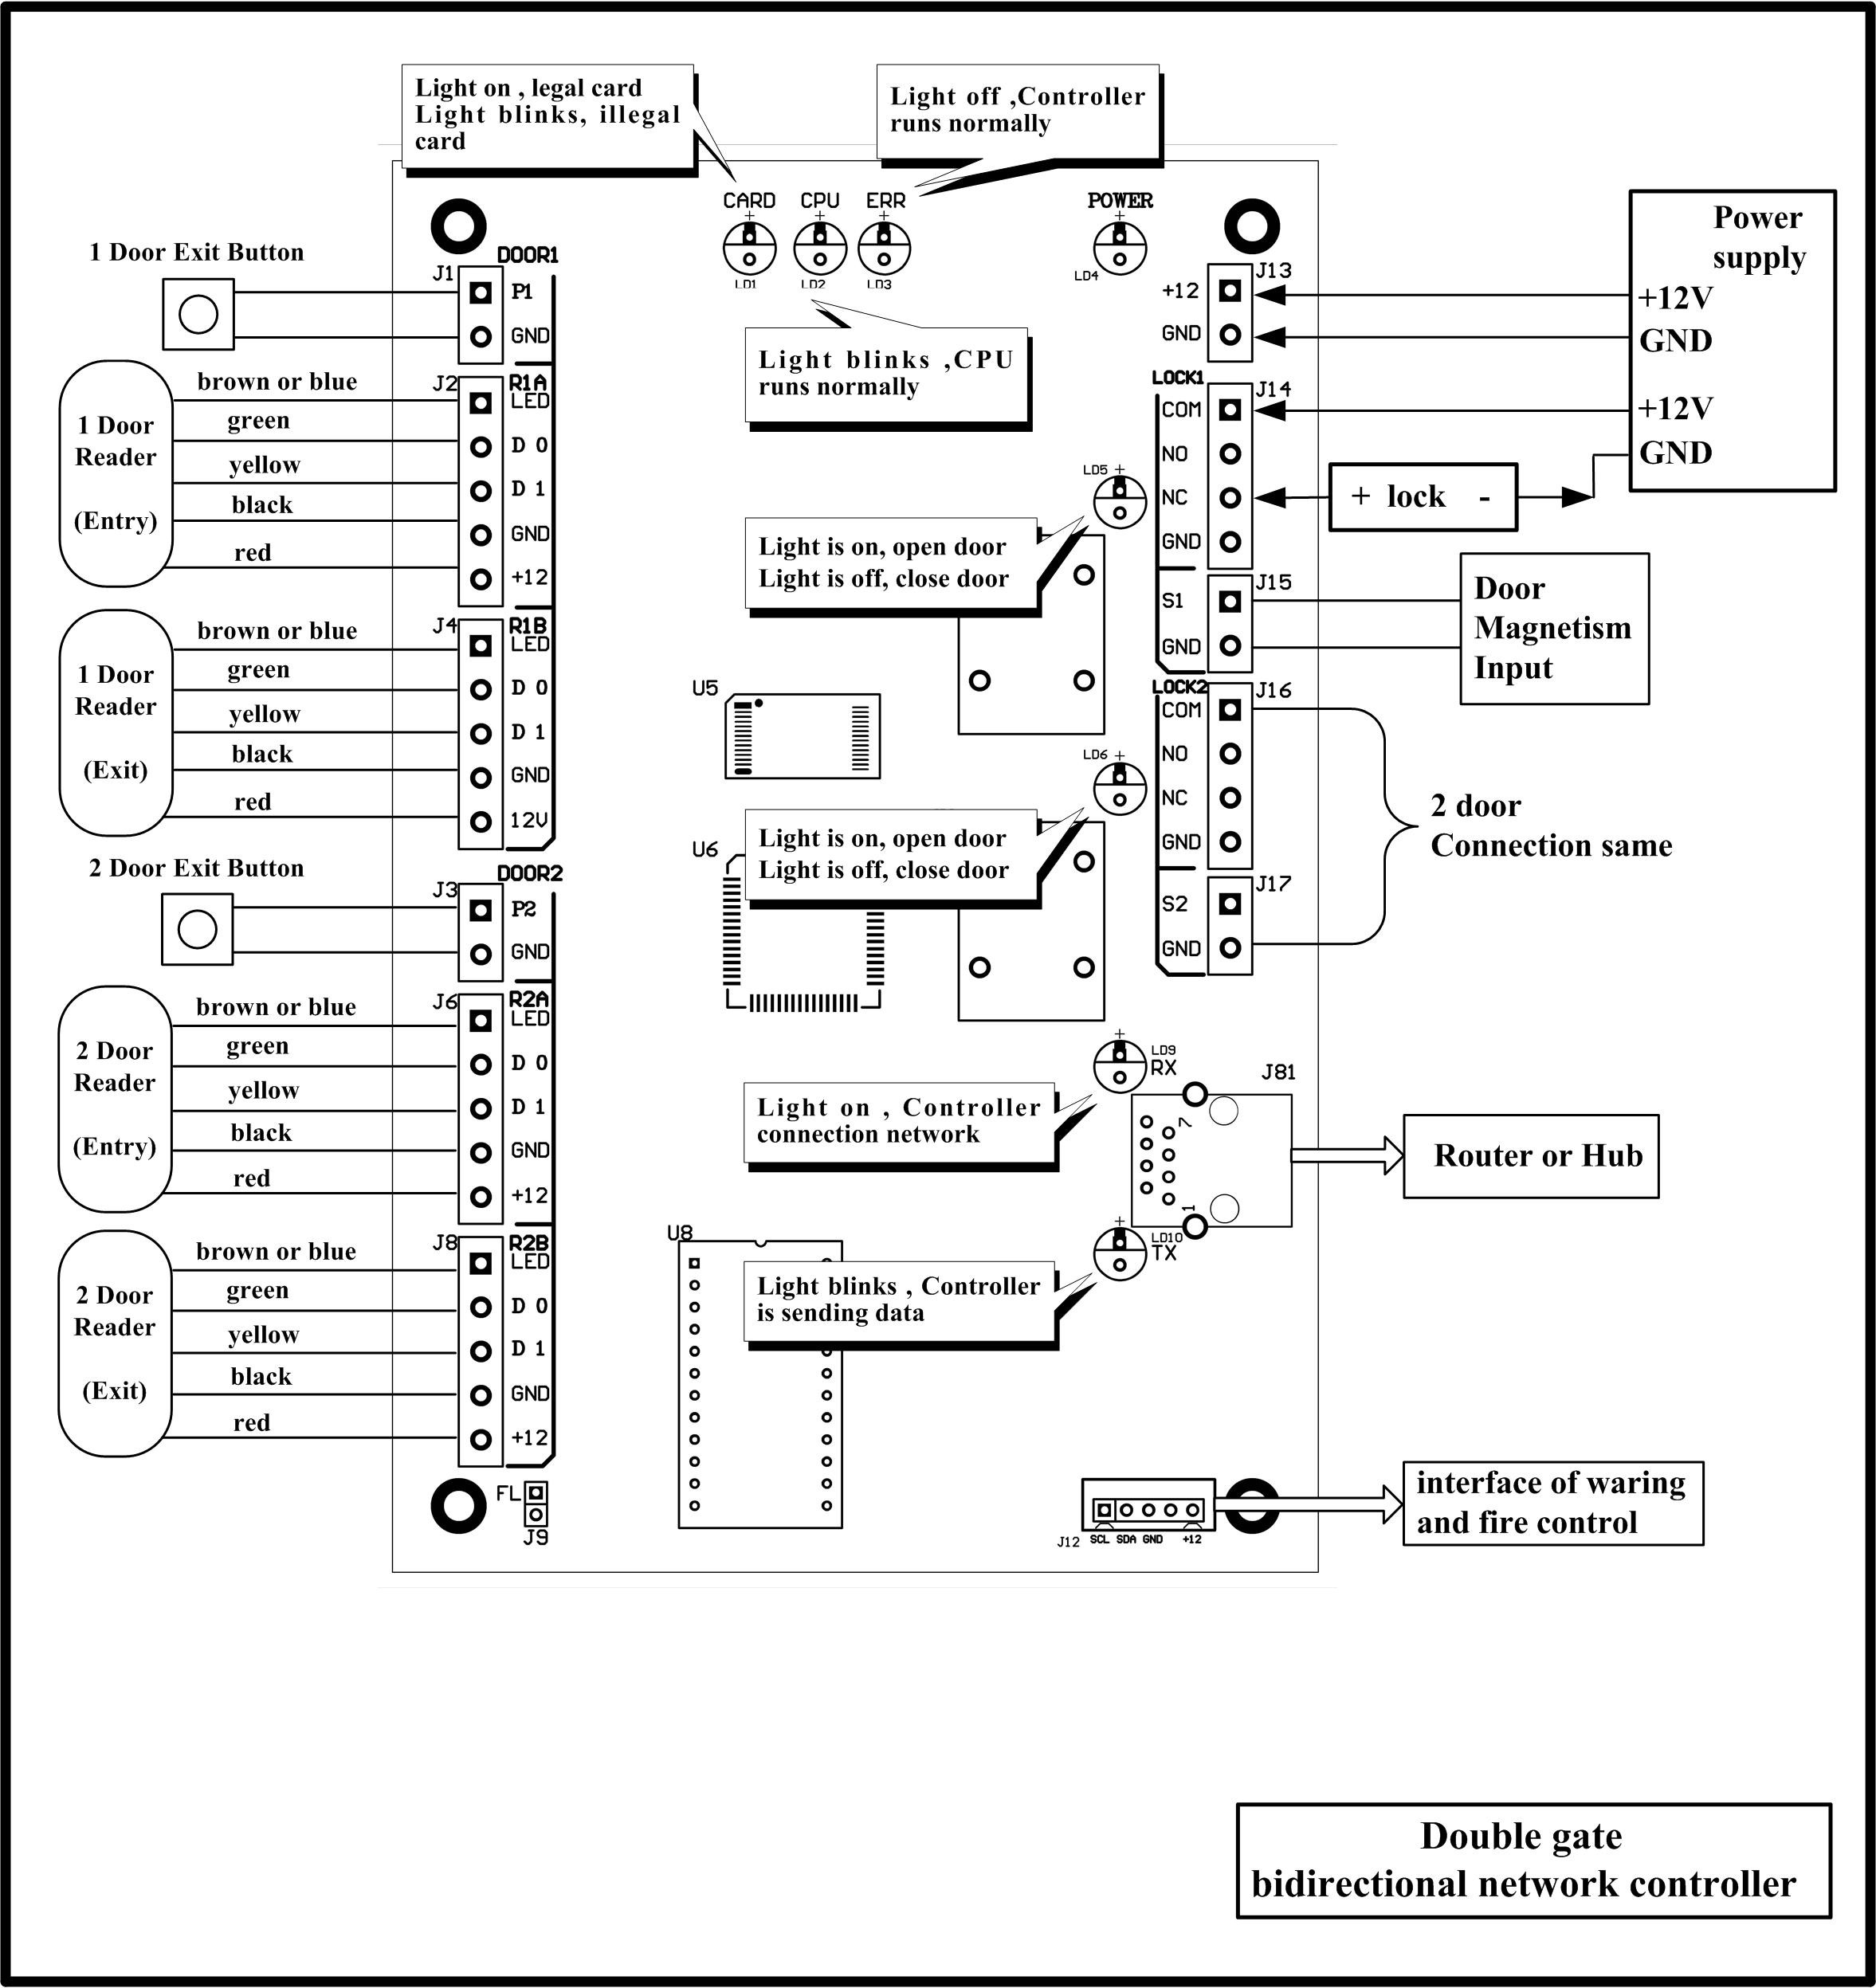 lenel access control wiring diagram pots sample